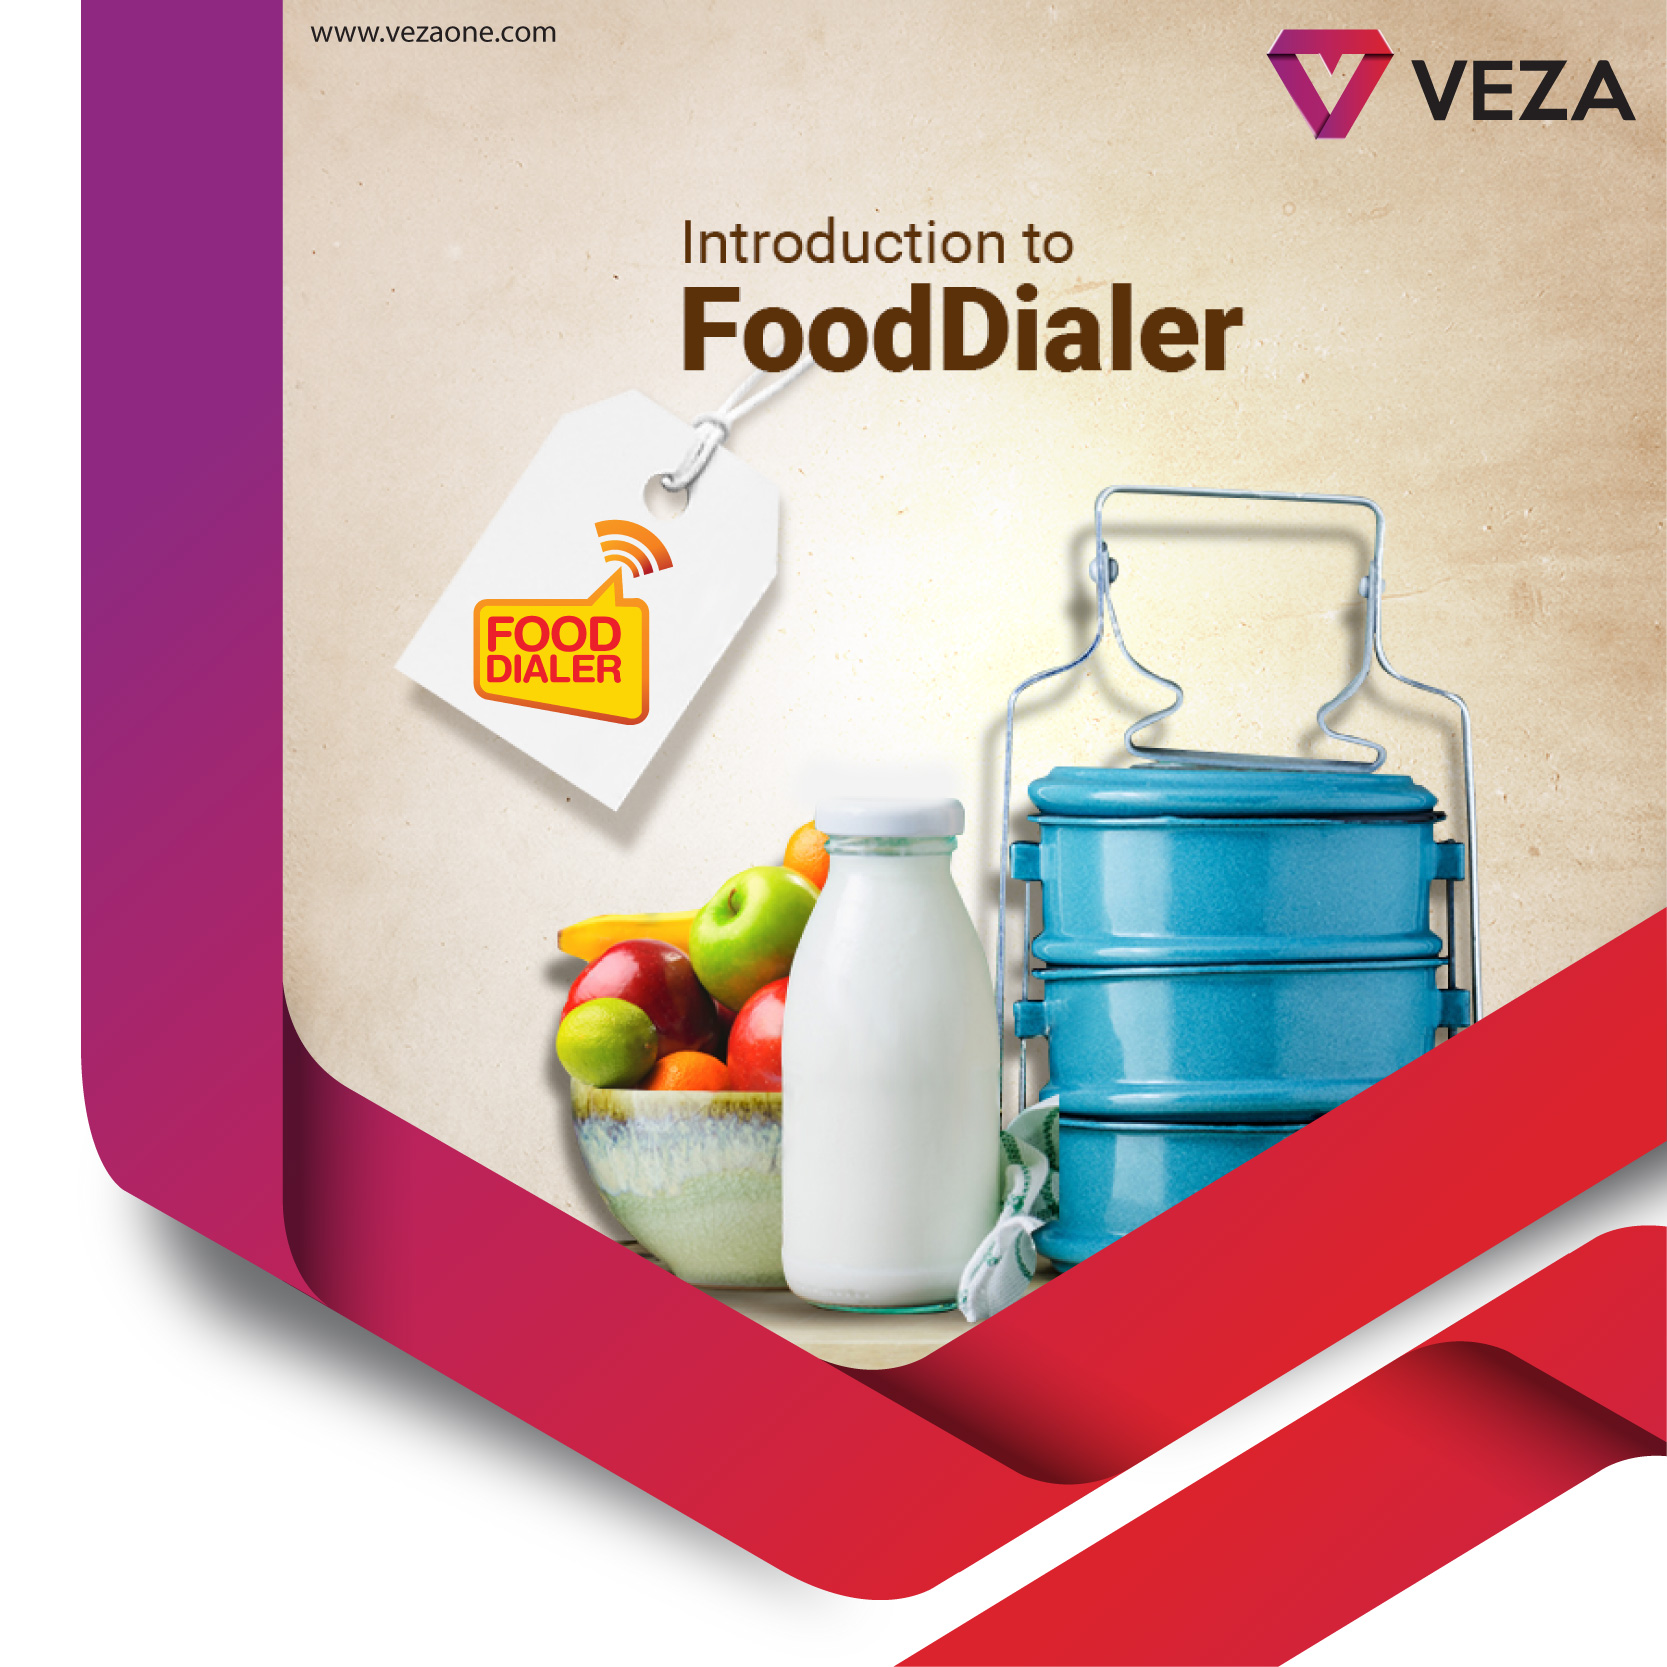 Introduction To FoodDialer